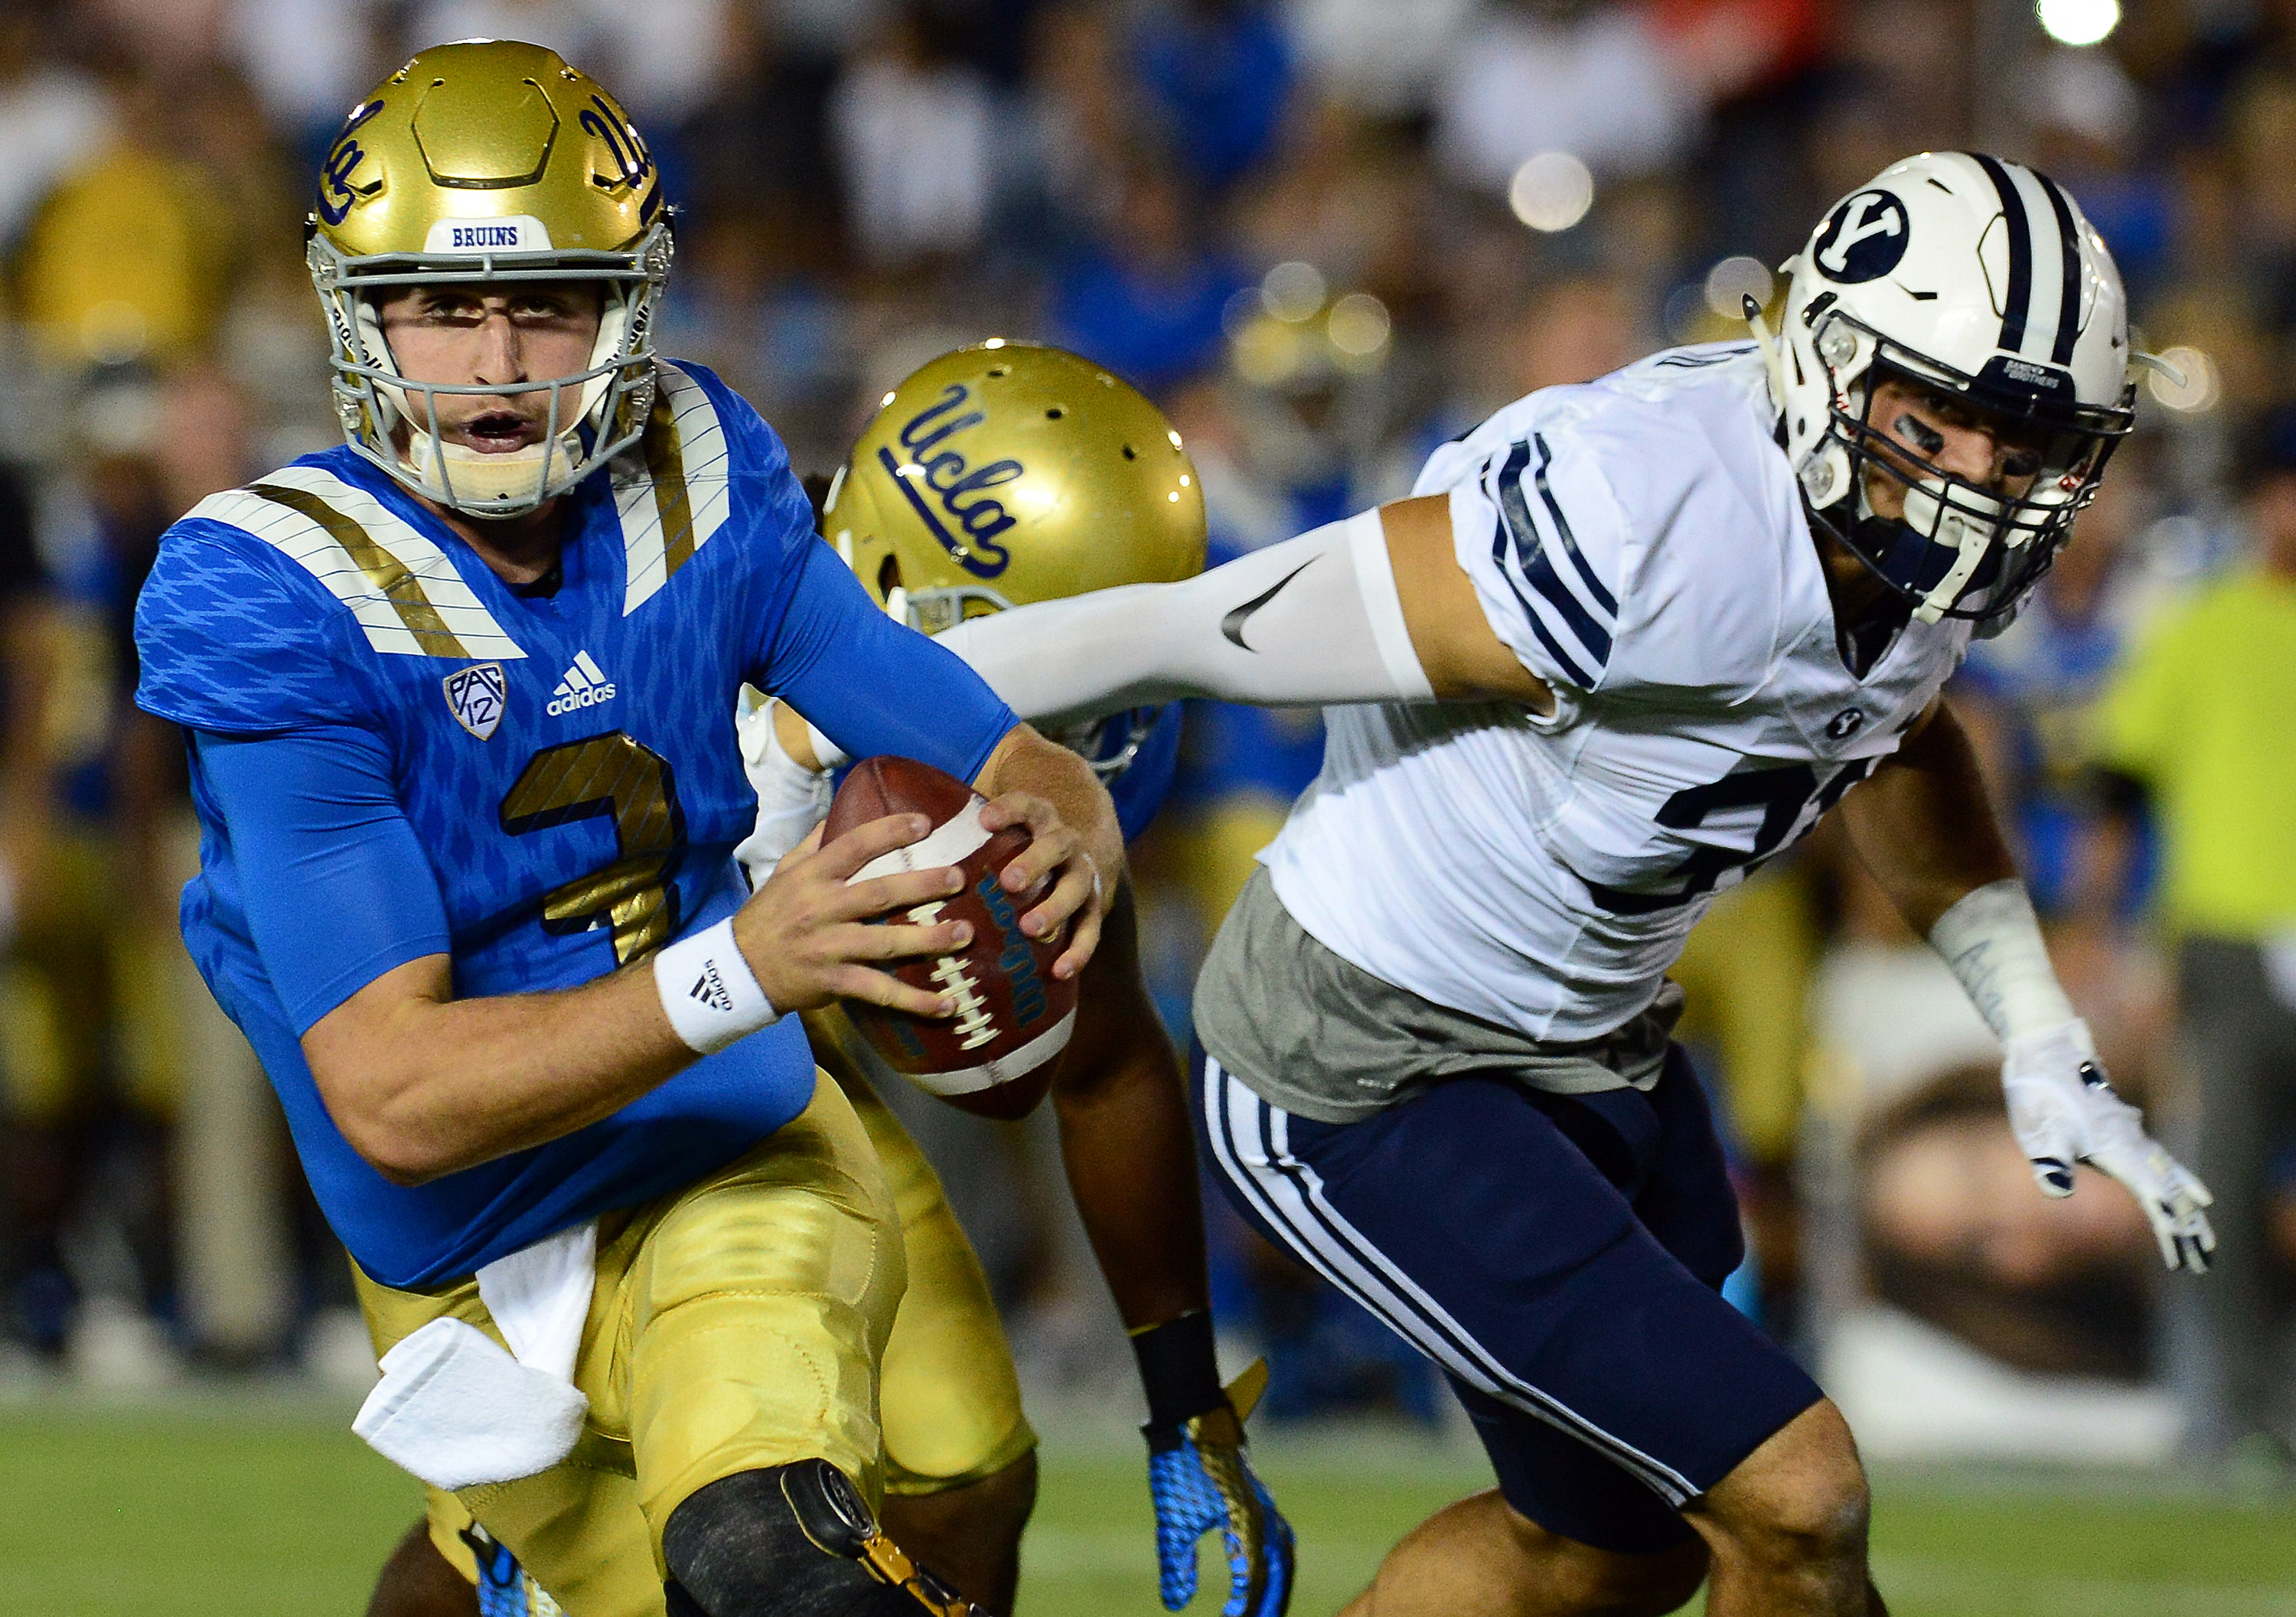 UCLA quarterback Josh Rosen (3) was named to the FWAA Freshman All-American, becoming the fourth Bruin to make the list in three years. (Keith Birmingham/Staff)